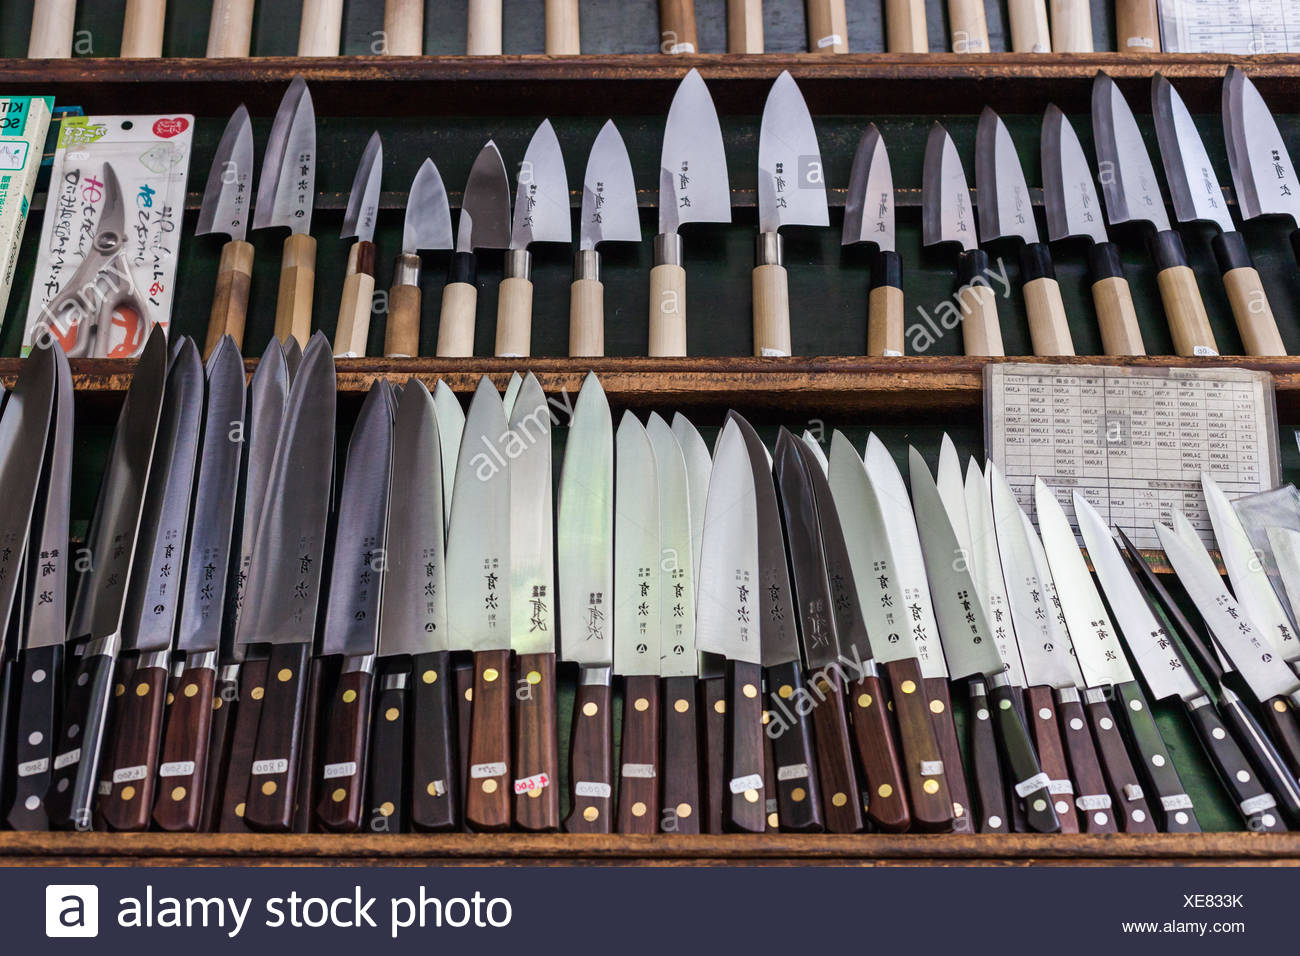 Japanese knives. - Stock Image